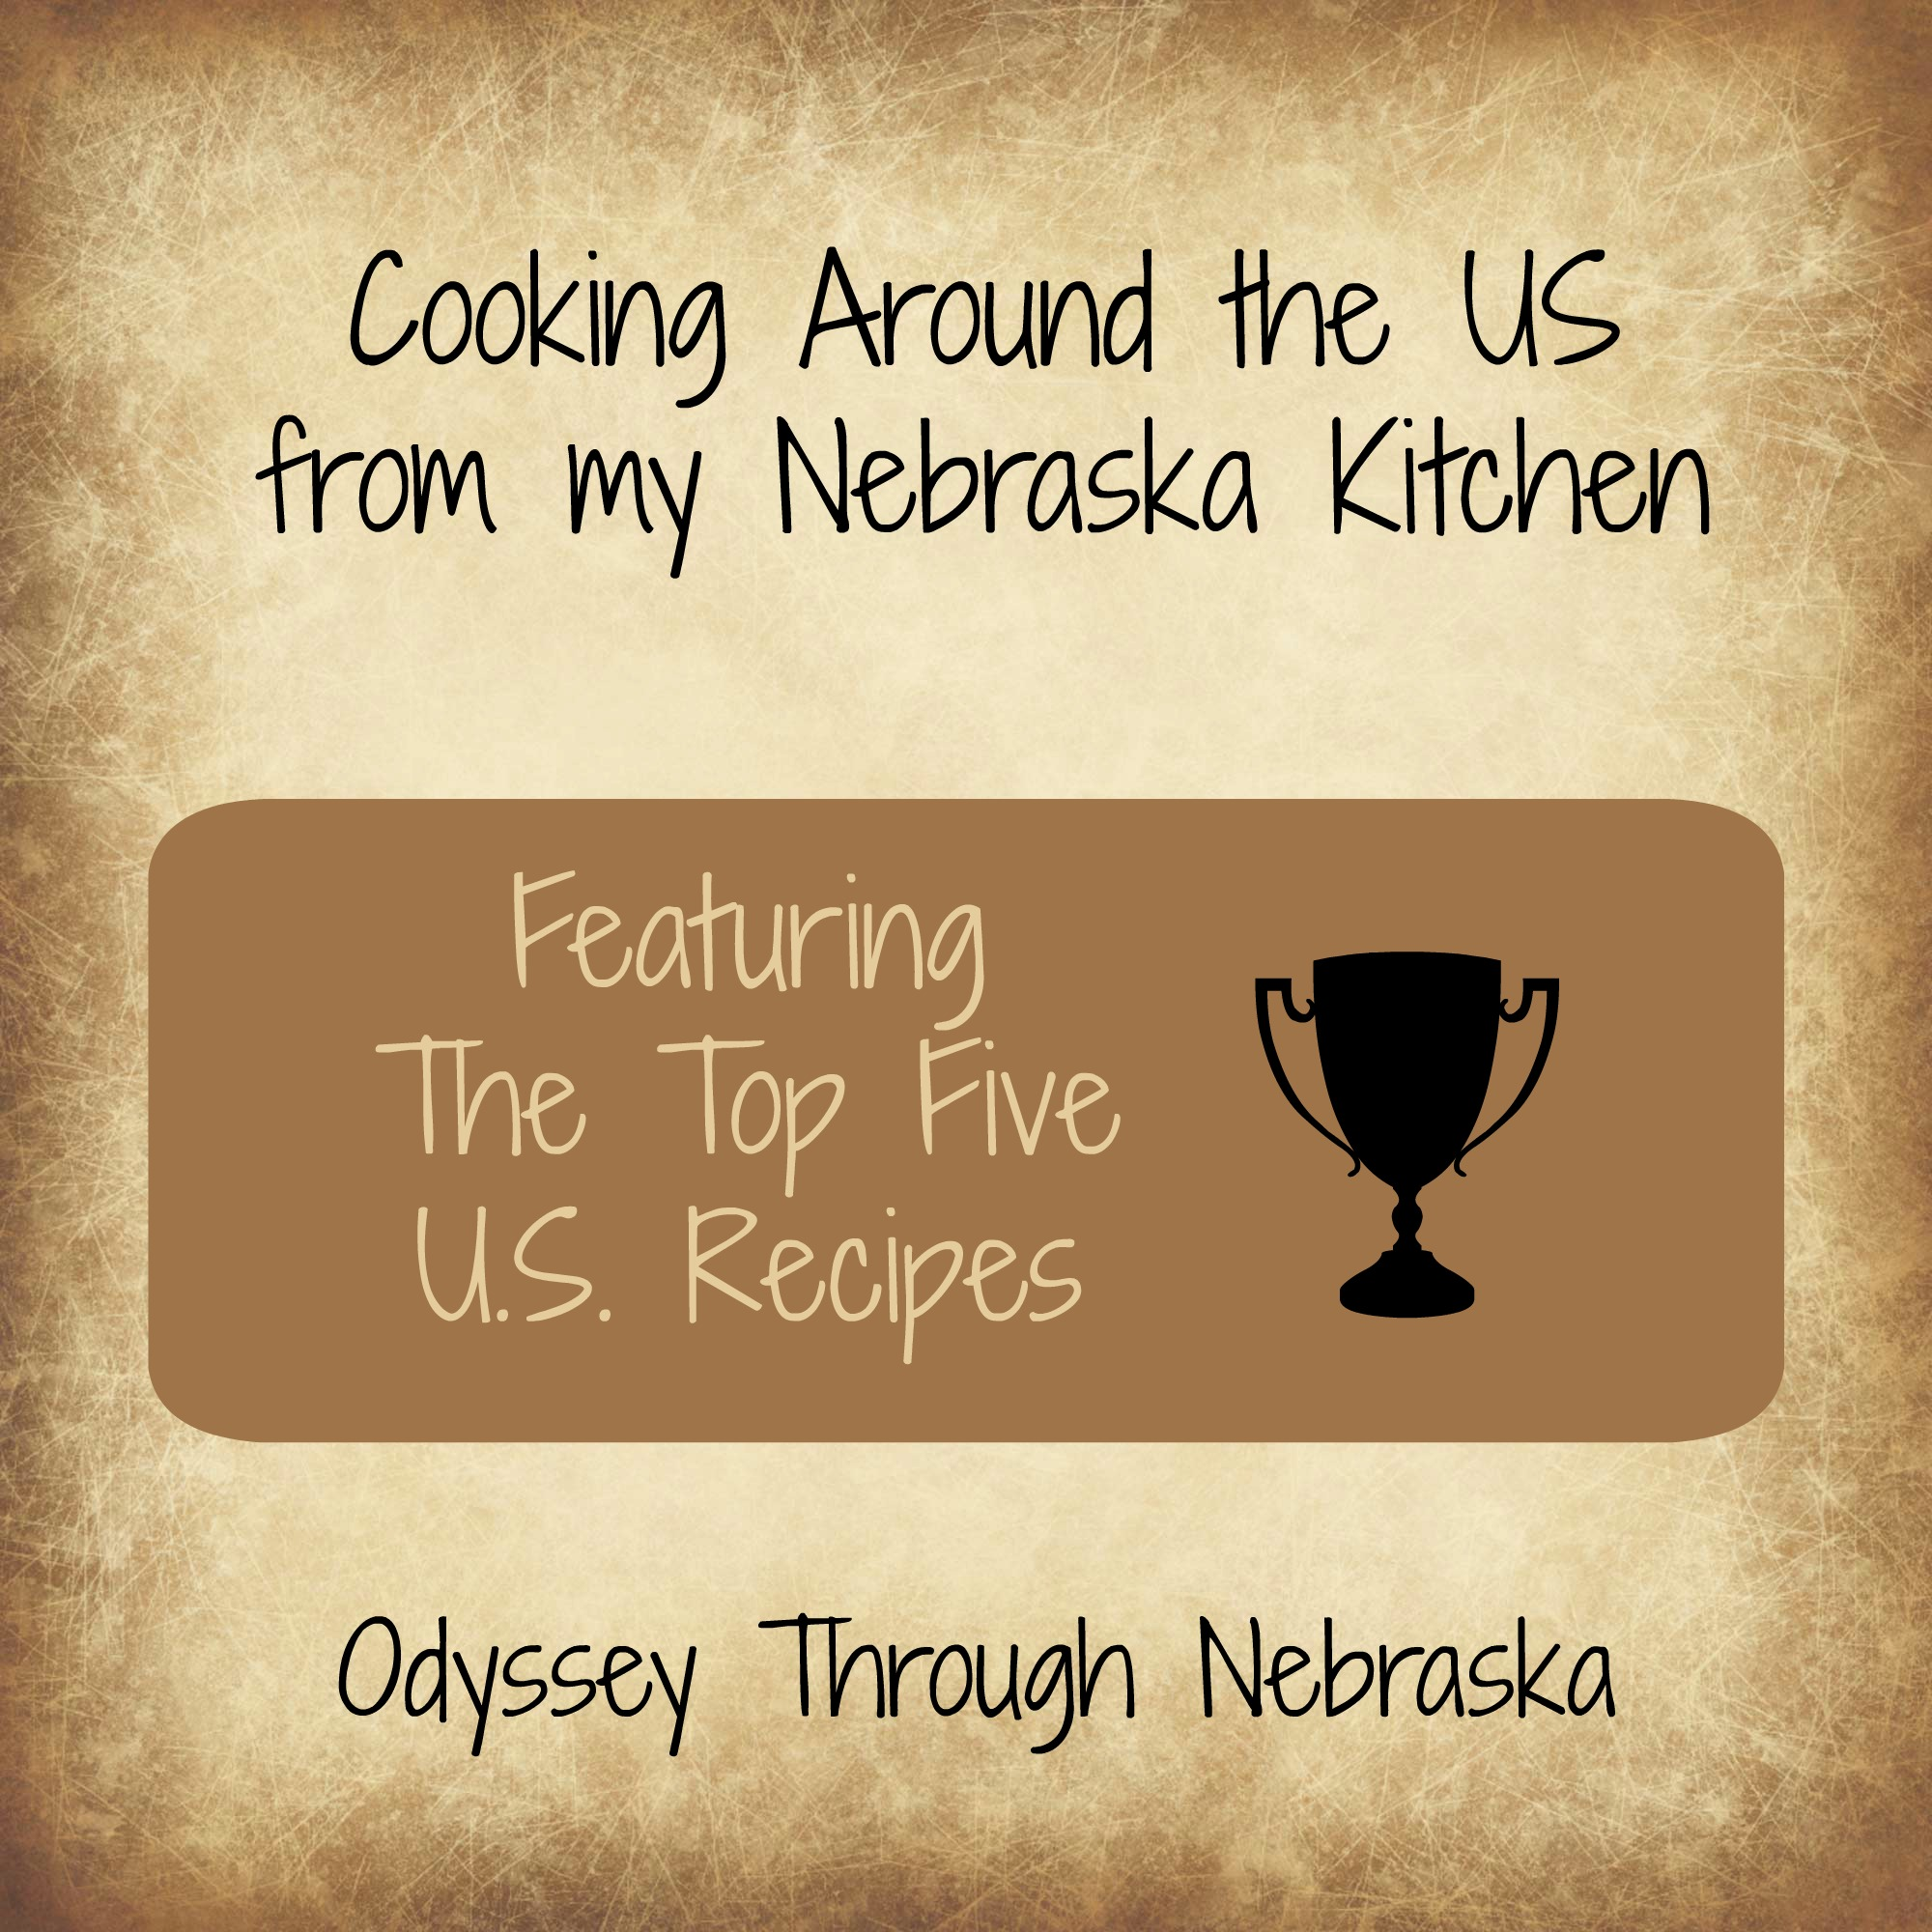 United States Recipes series